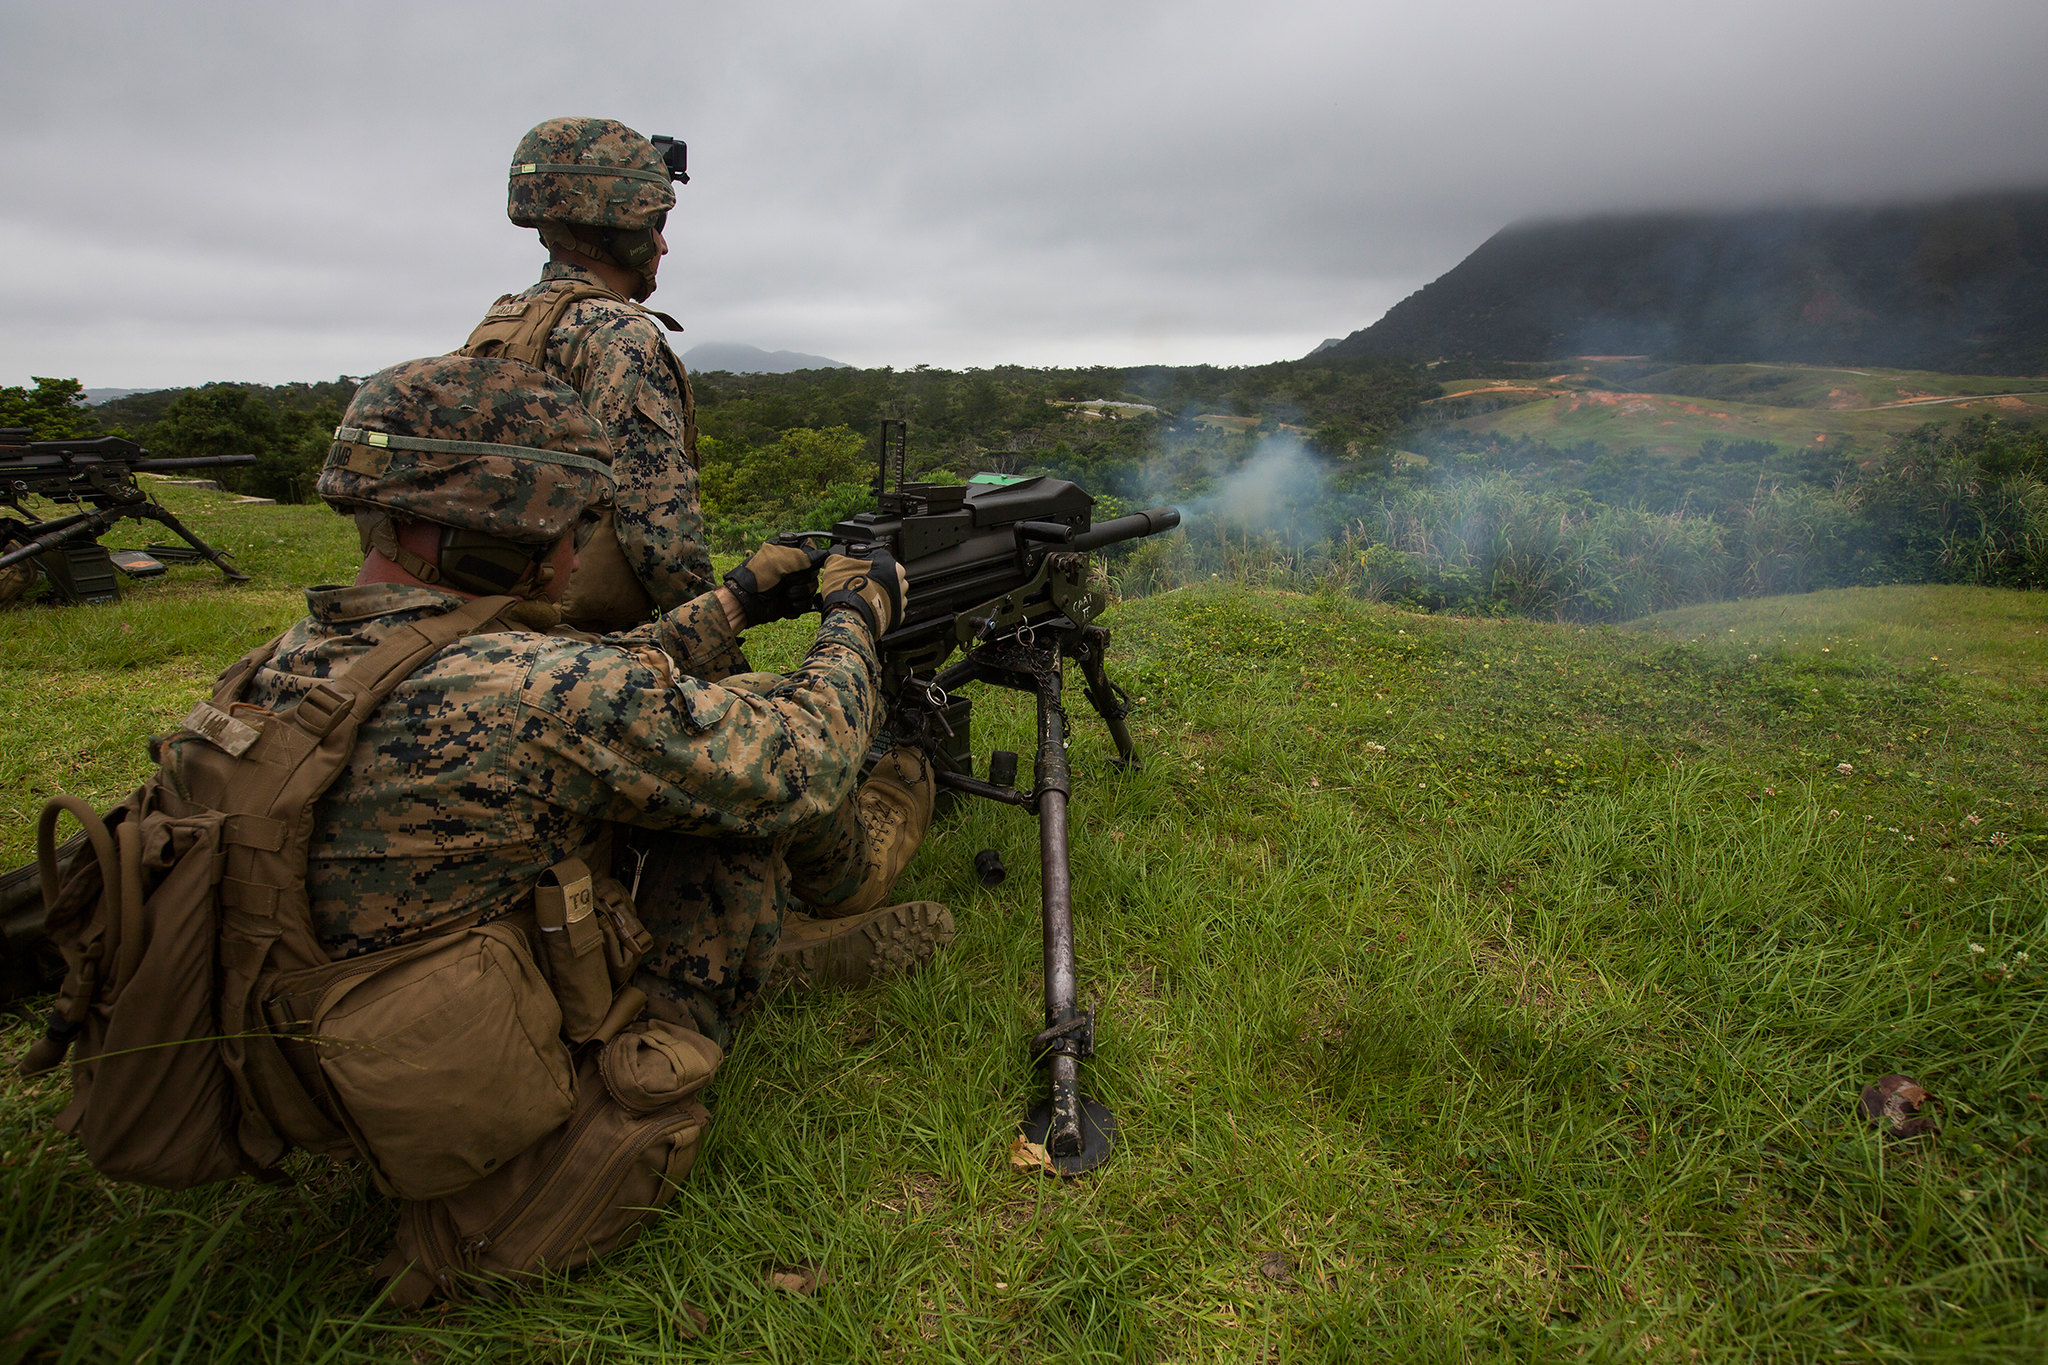 Marines fire a Mark 19 automatic grenade launcher during training at Camp Schwab, Okinawa, Japan, May 28, 2019. (Lance Cpl. Cameron E. Parks/Marine Corps)